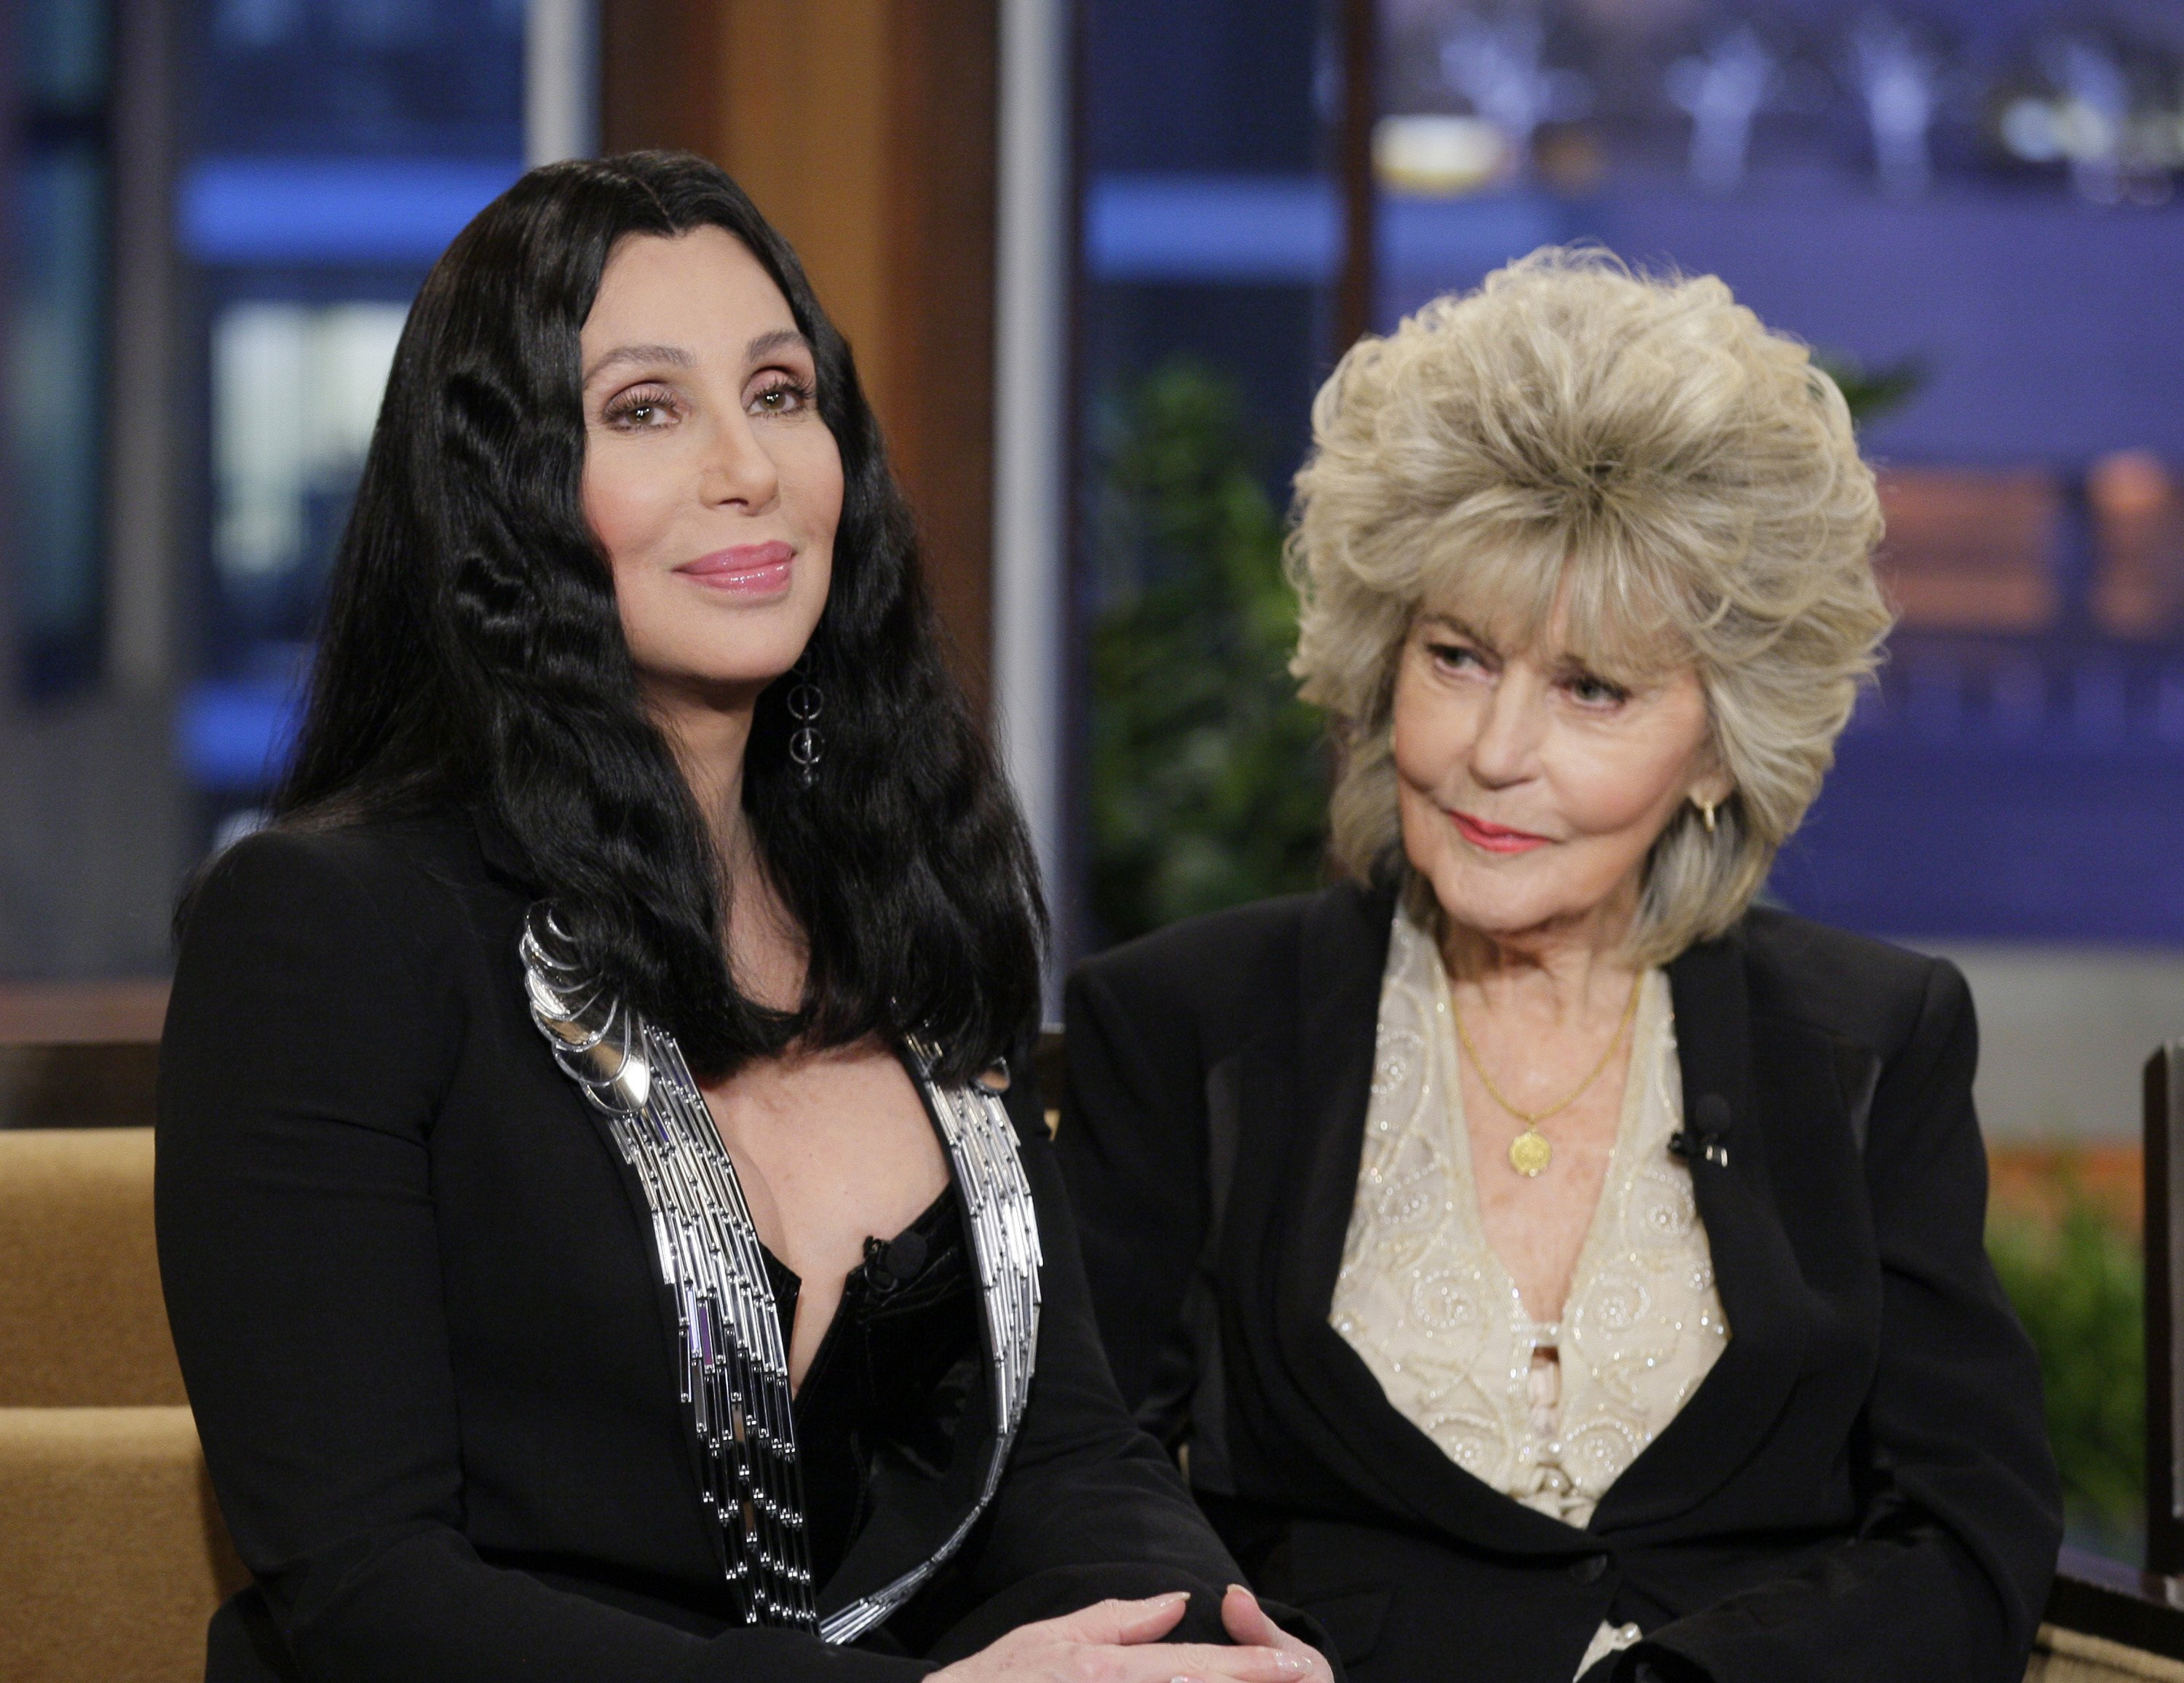 Image Source: Getty Images/Cher and Georgia sharing the stage